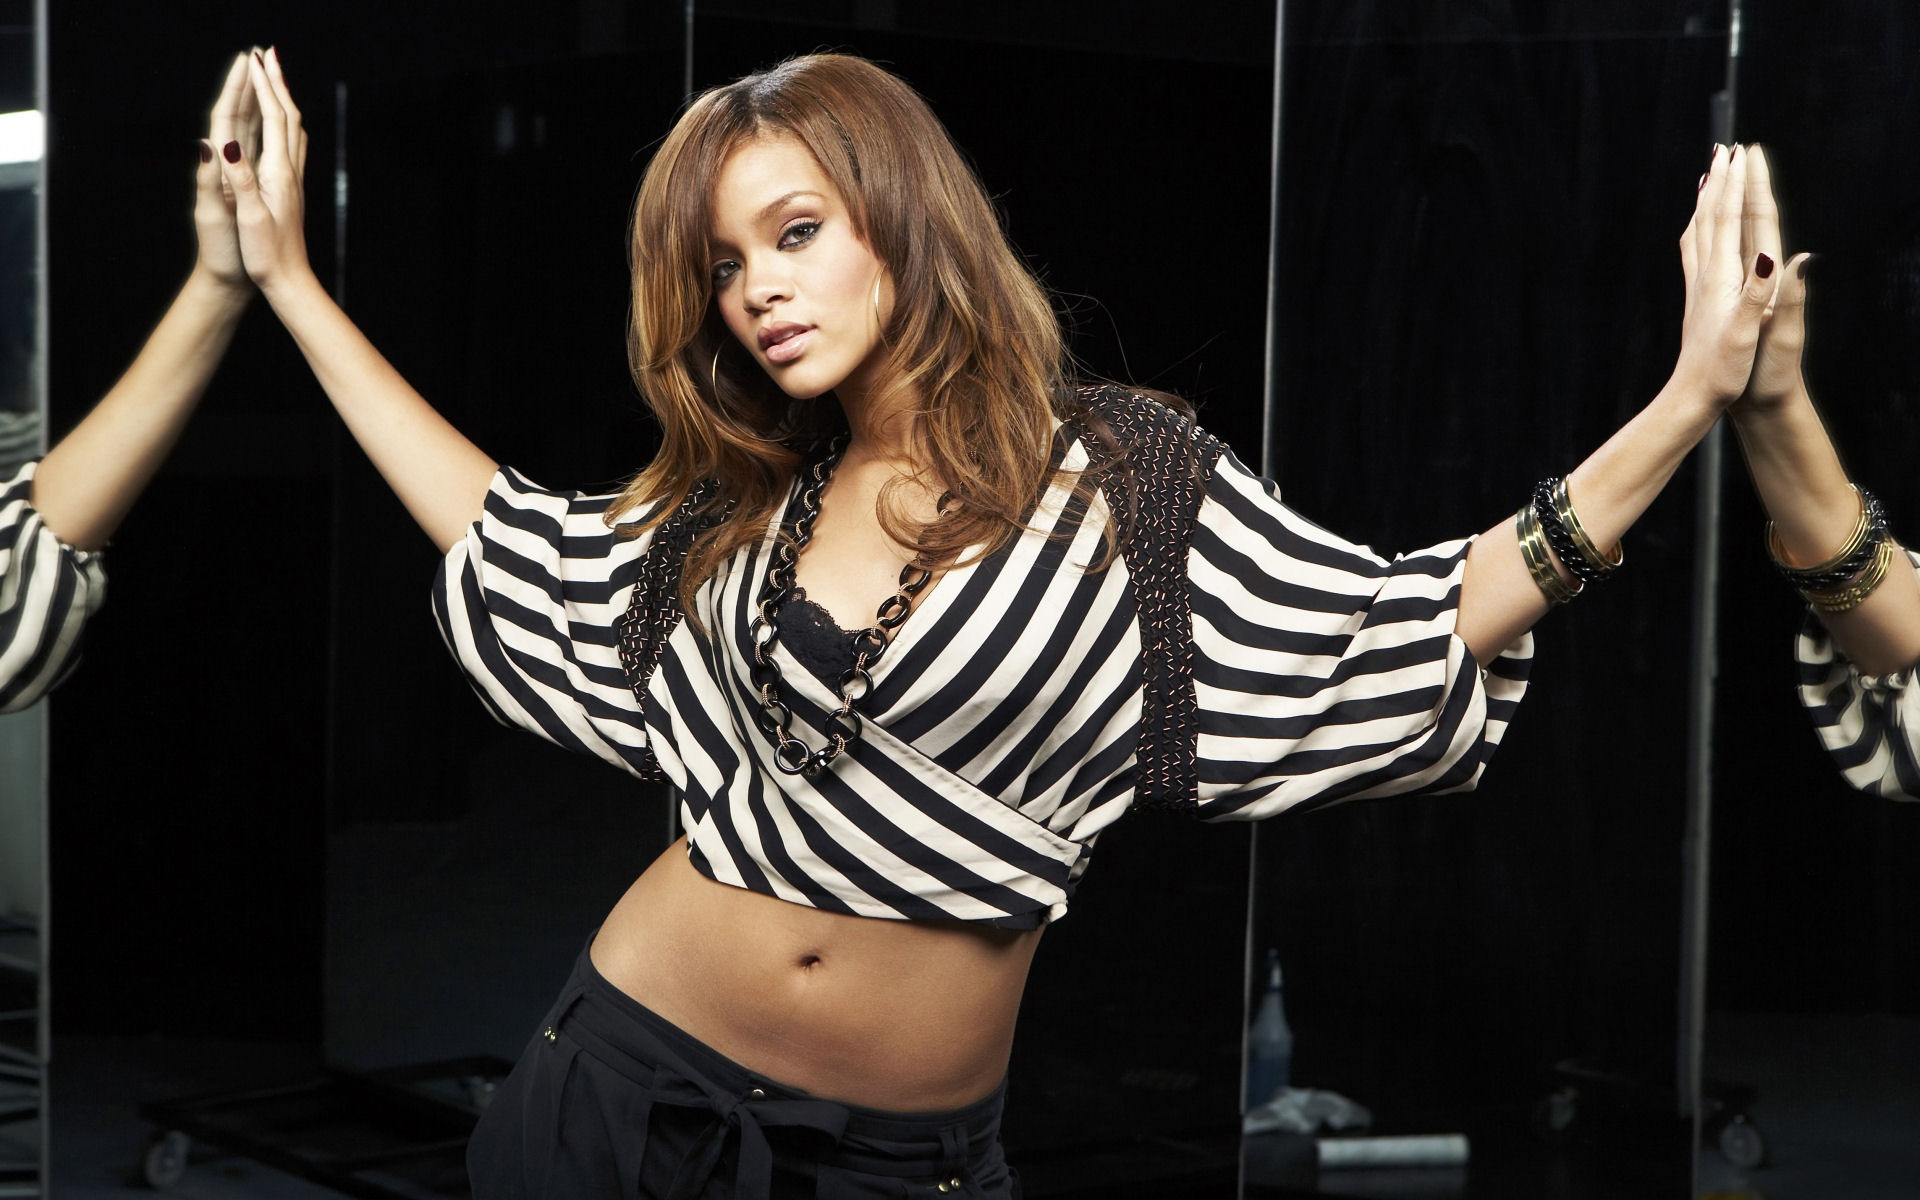 rihanna wallpapers hd A3